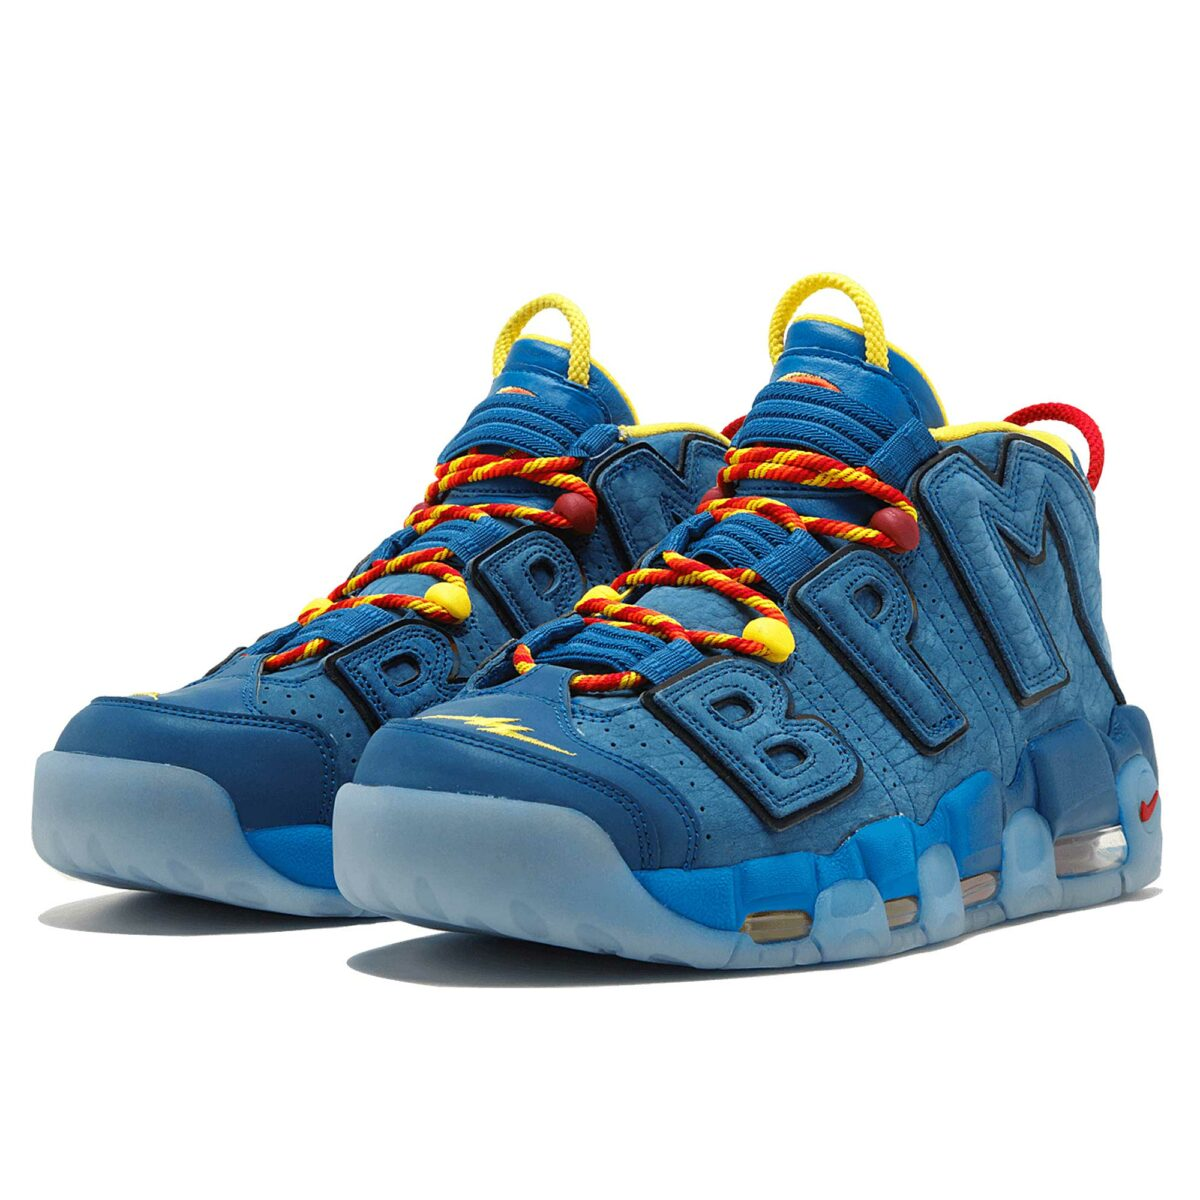 nike air more uptempo 96 DB Doernbecher 2017 ah6949_446 купить